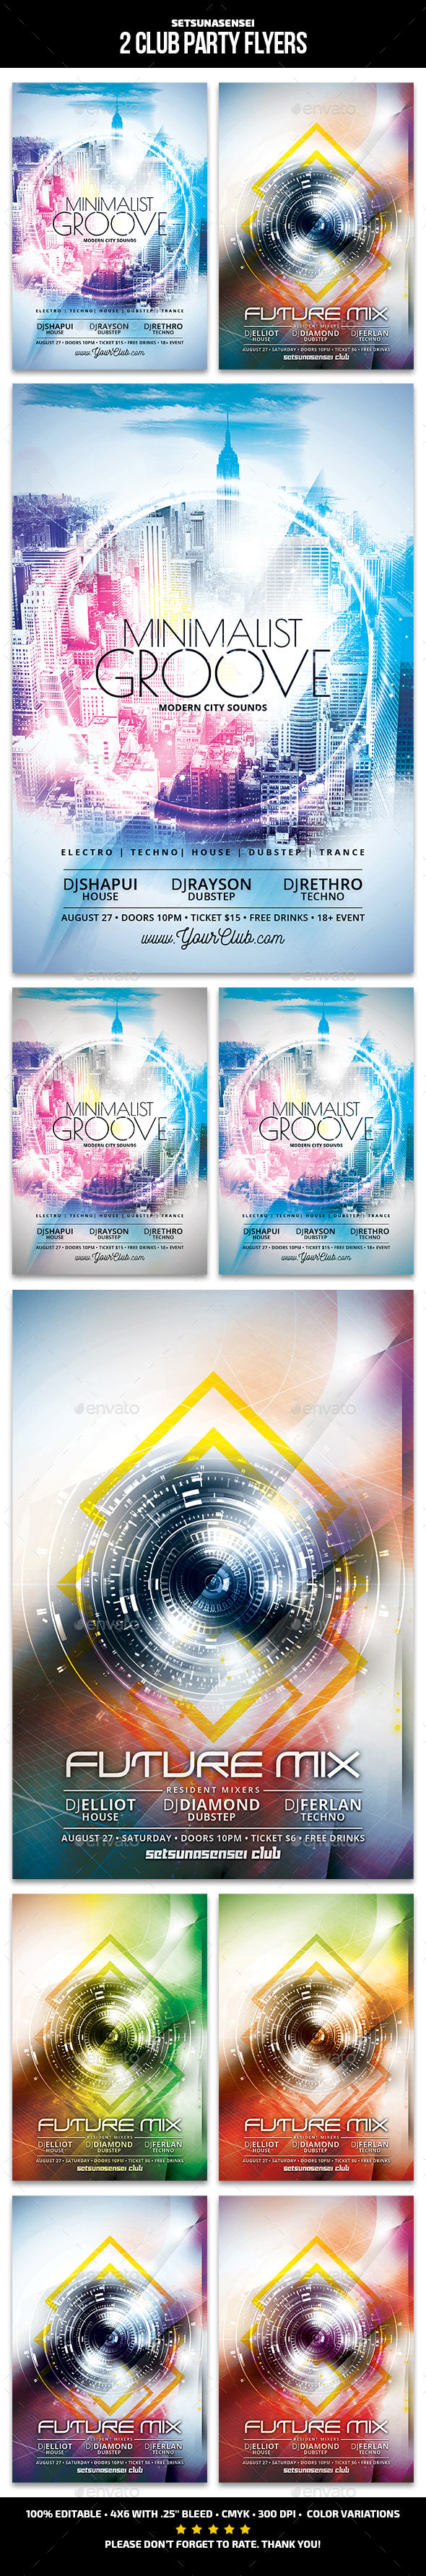 2 Club Party Flyers - Clubs & Parties Events